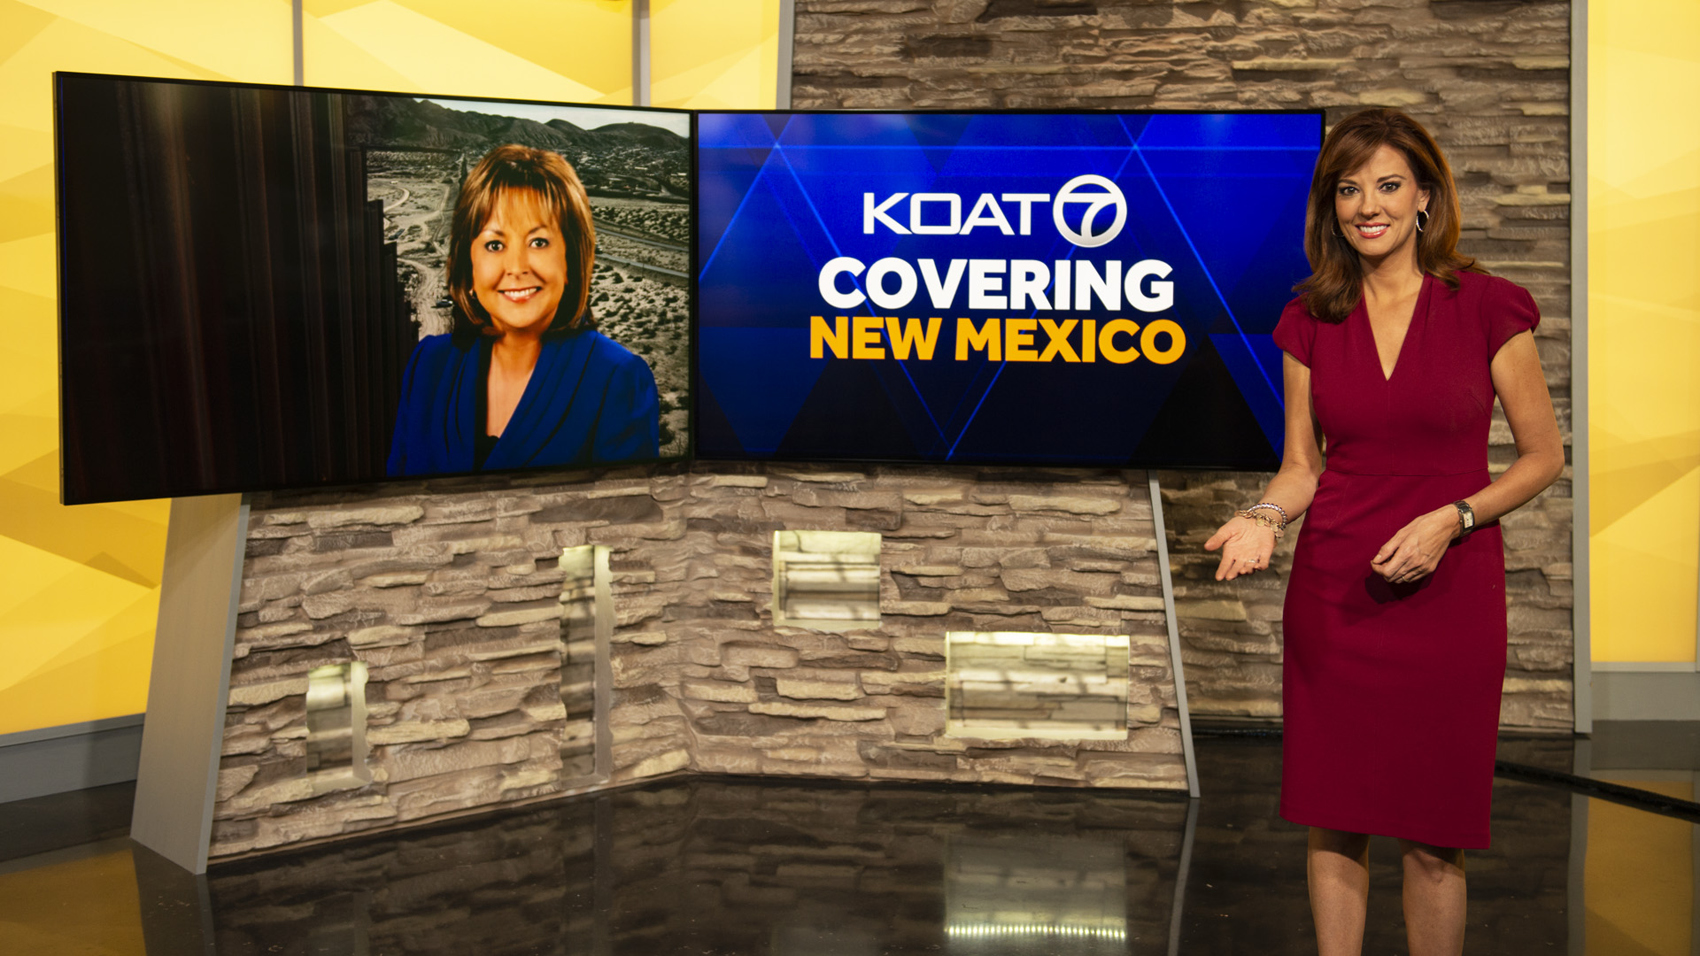 ncs_KOAT-TV-Studio-Devlin_00006